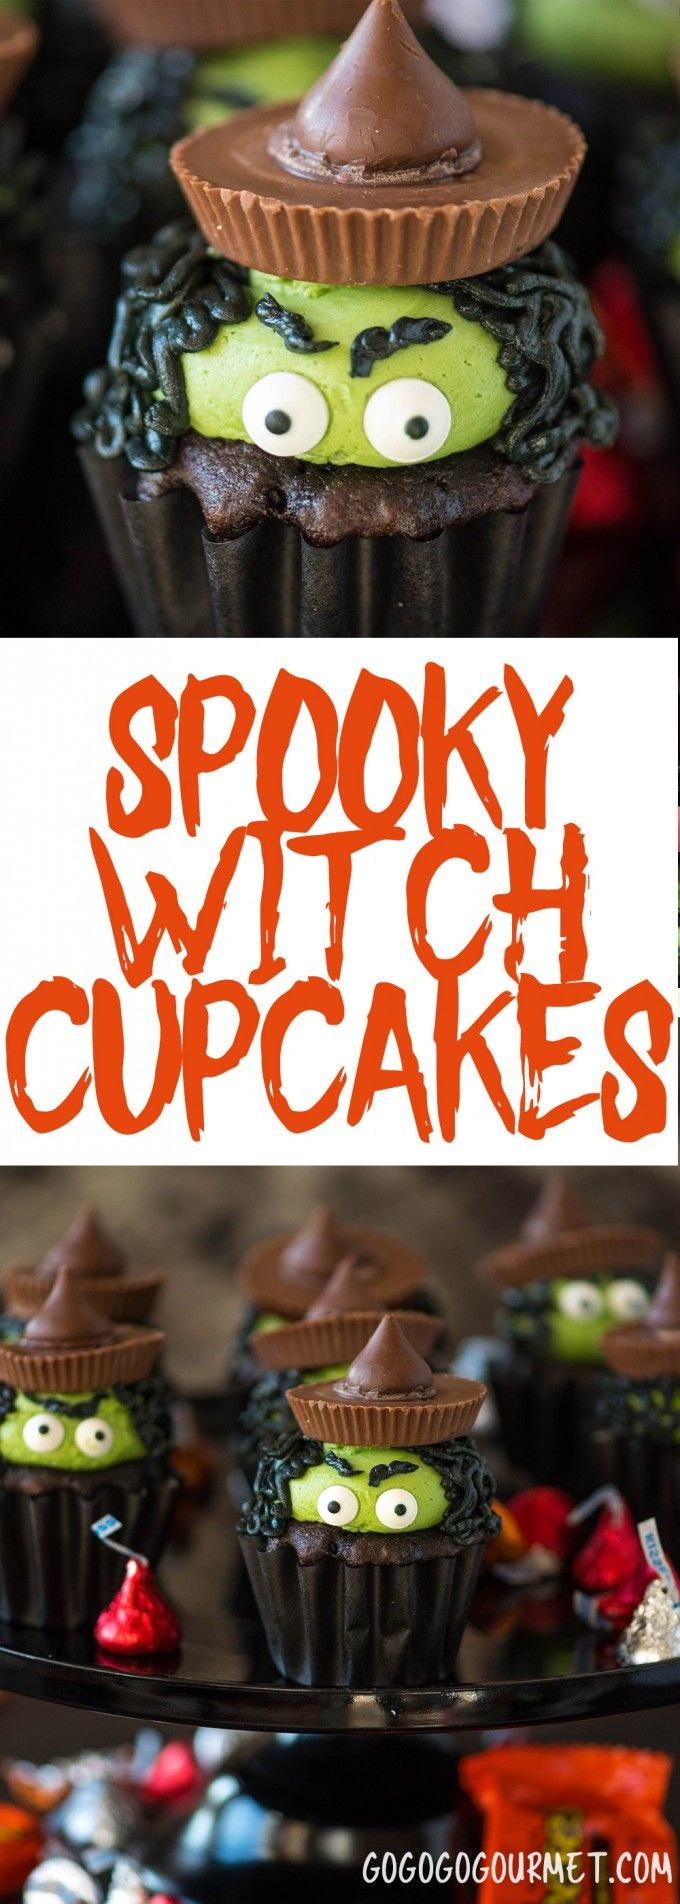 These Witch Cupcakes are an adorable Halloween cupcake idea! Super easy to do with candy eyes and favorite Halloween treats! via @gogogogourmet